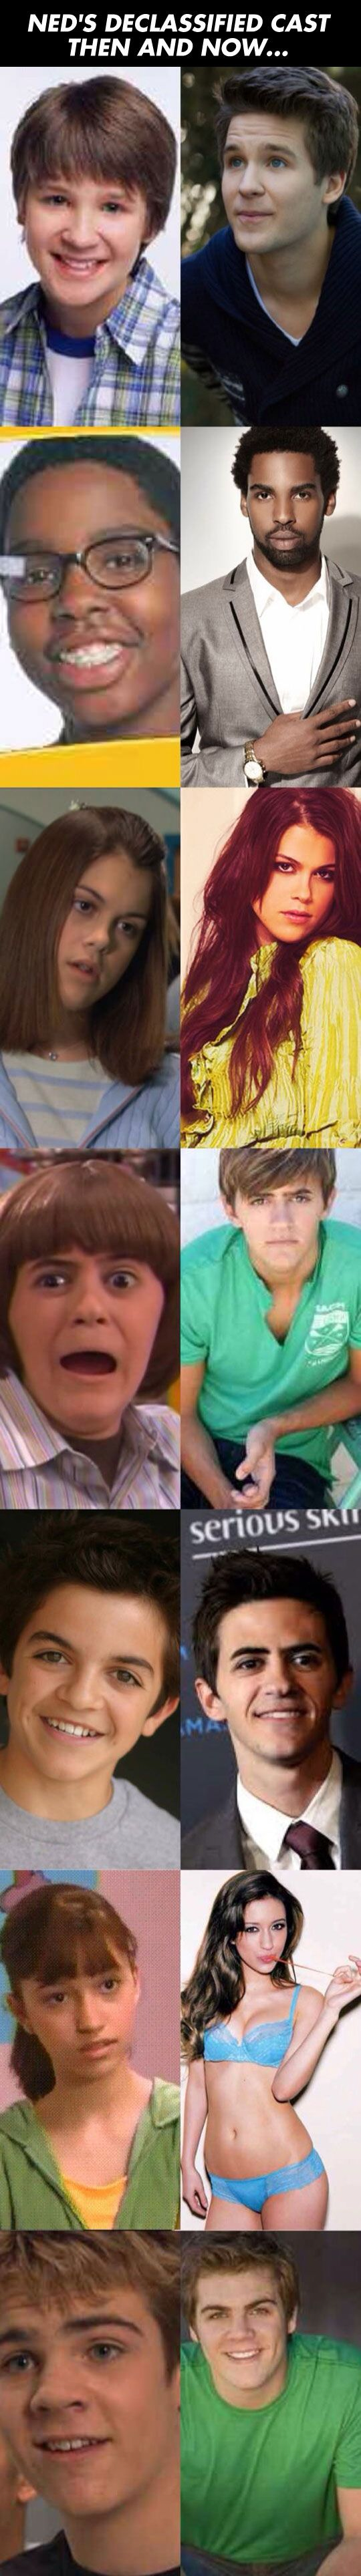 Ned's Declassified Cast Then And Now. Coconut head pulled a Neville Longbottom on us.